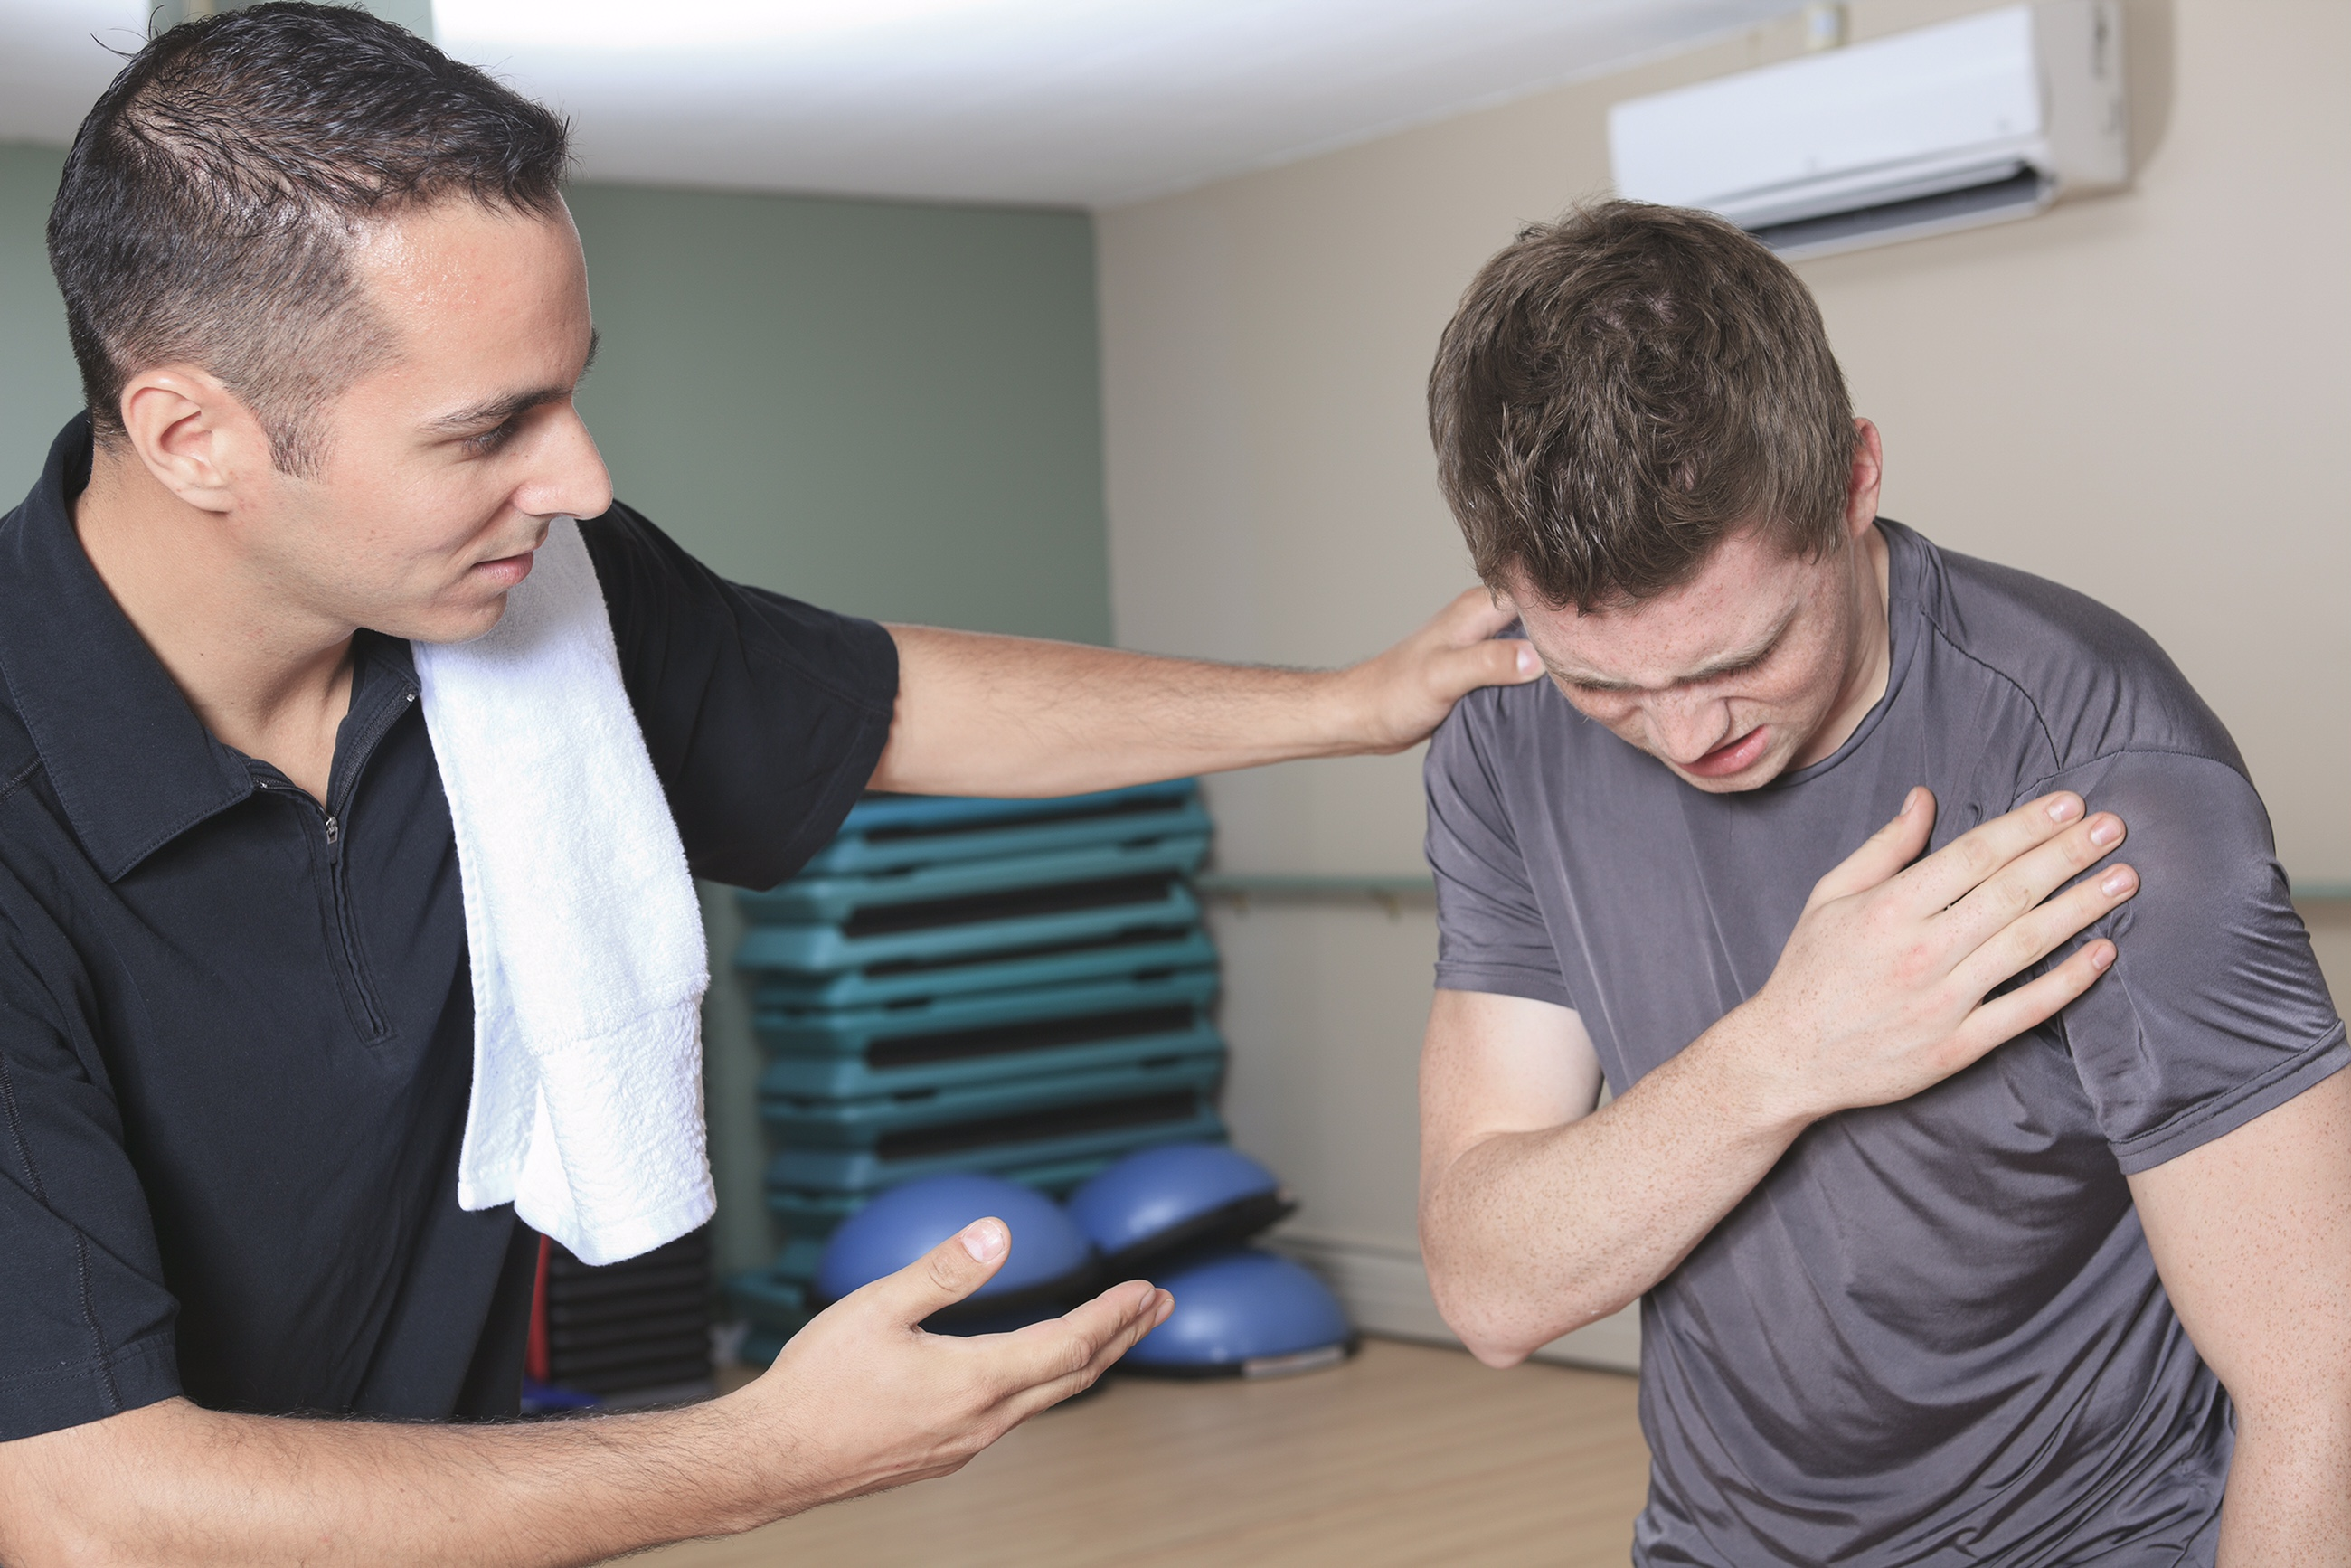 Athletic trainer helping athlete with shoulder pain